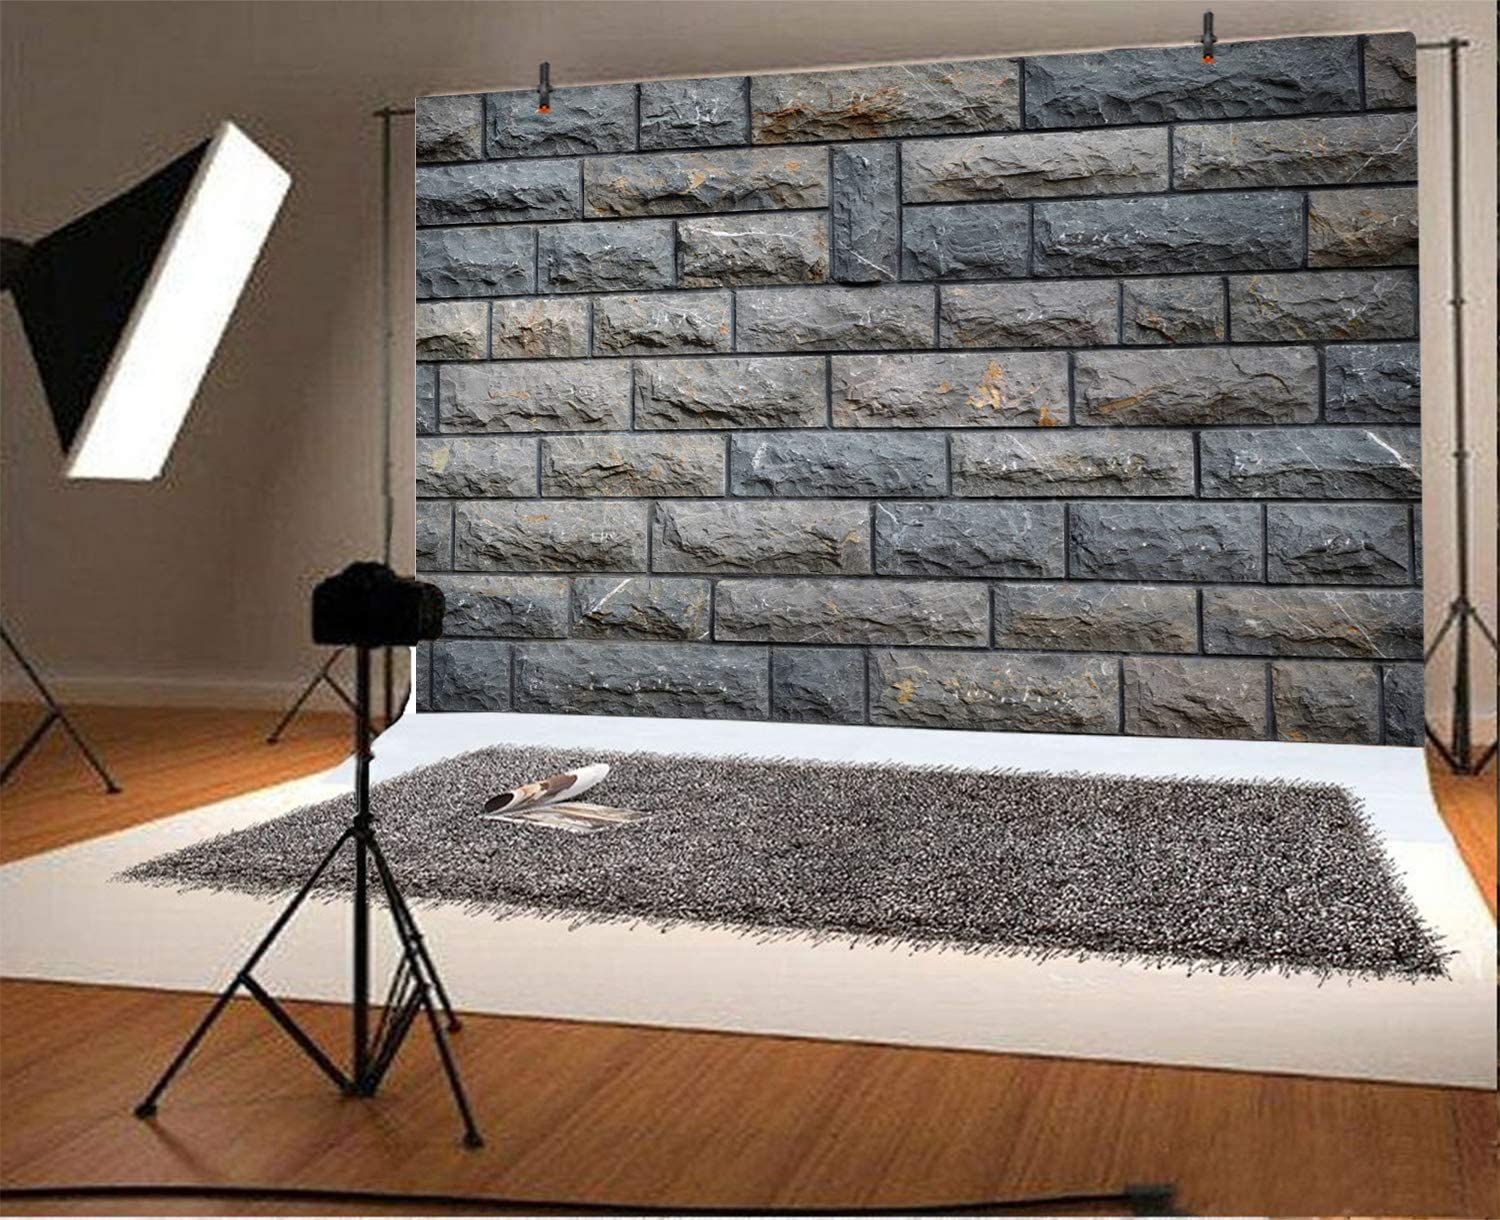 YEELE Antique Stone Wall Backdrop 12x10ft YouTube Videos Work Event Photography Background Newborn Baby Kids Adults Portrait Dessert Table Decor Clothes Photos Photobooth Props Digital Wallpaper